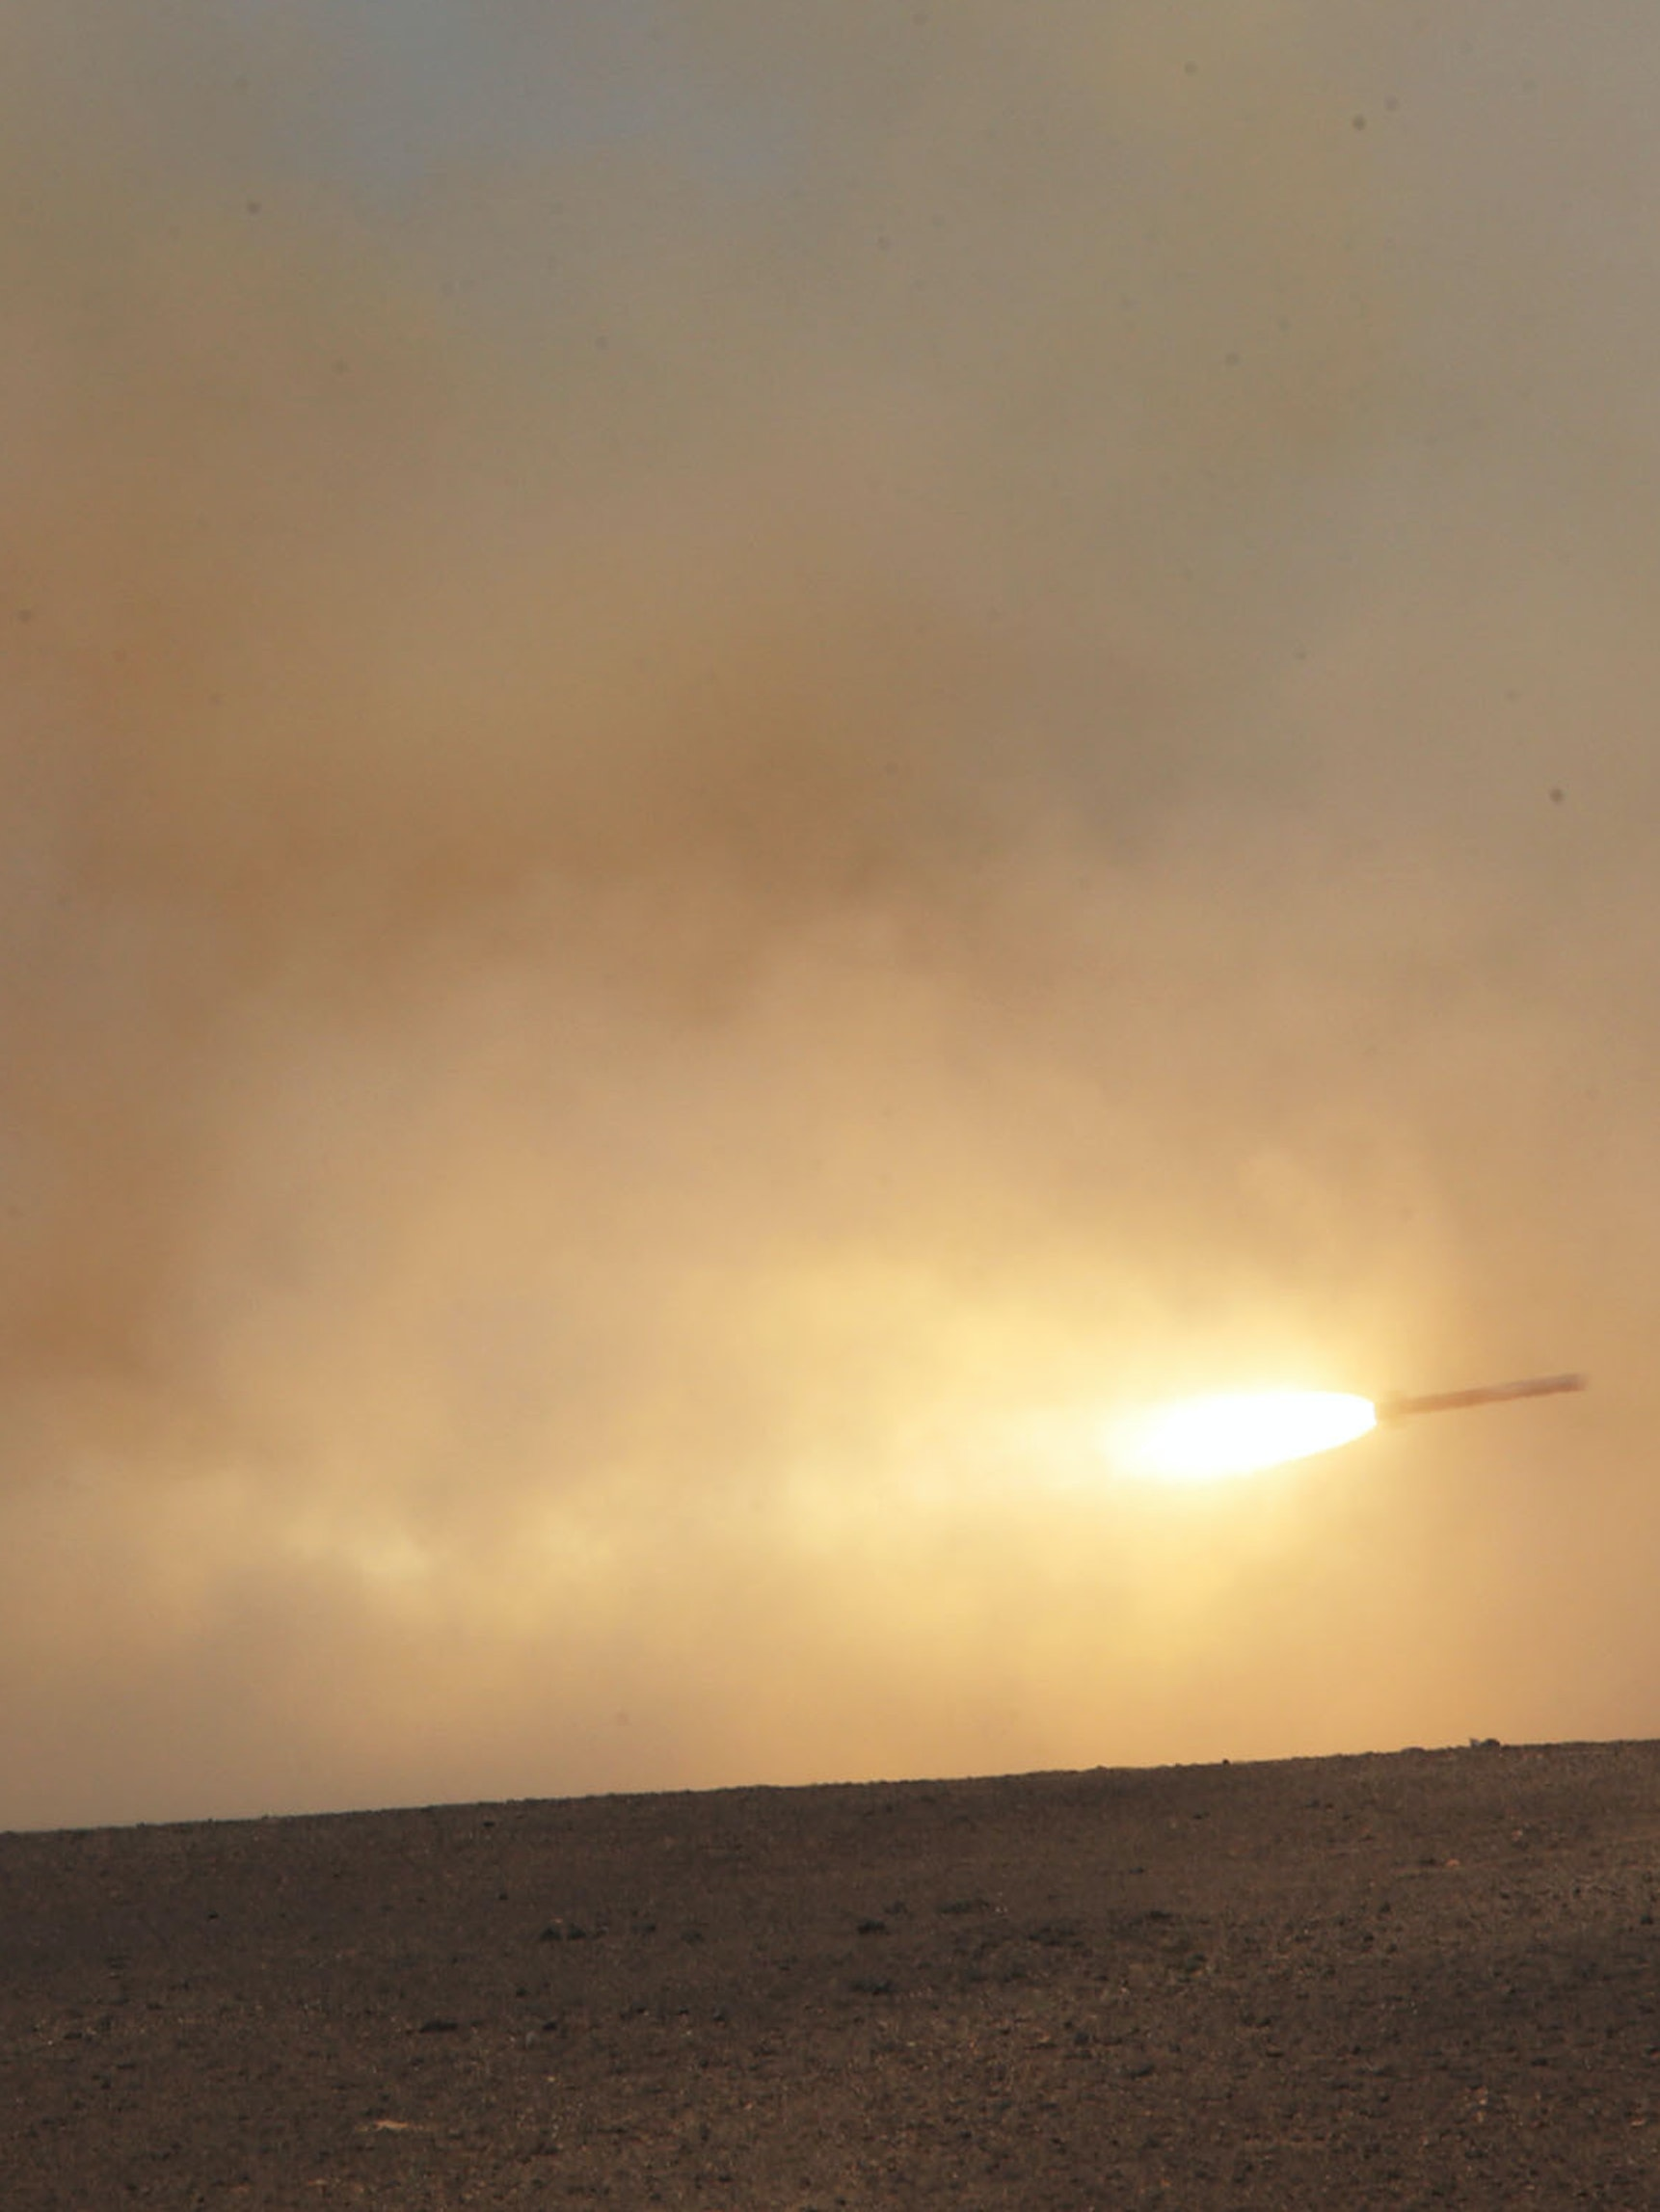 A missle is launched during joint Jordanian exercises with 18 nations including the U.S. in a final counter attack at the 5th annual exercise Eager Lion May 18, 2015 in the southeast desert of Wadi Shadiyah, Jordan. In the final exercise, two U.S. B-52 Stratofortress aircraft flew a 35-hour mission from the U.S. to Jordan directly and back. Also used in the exercises were Jordanian F-16 fighting falcons, high-mobility artillery rocket system (HIMARS), four Royal Jordanian air force AH-1 Cobras helicopters, three U.S. AH-64 Apaches helicopters, tanks, anti-tank guided missiles and heavy machine guns. (Photo by Jordan Pix/ Getty Images)